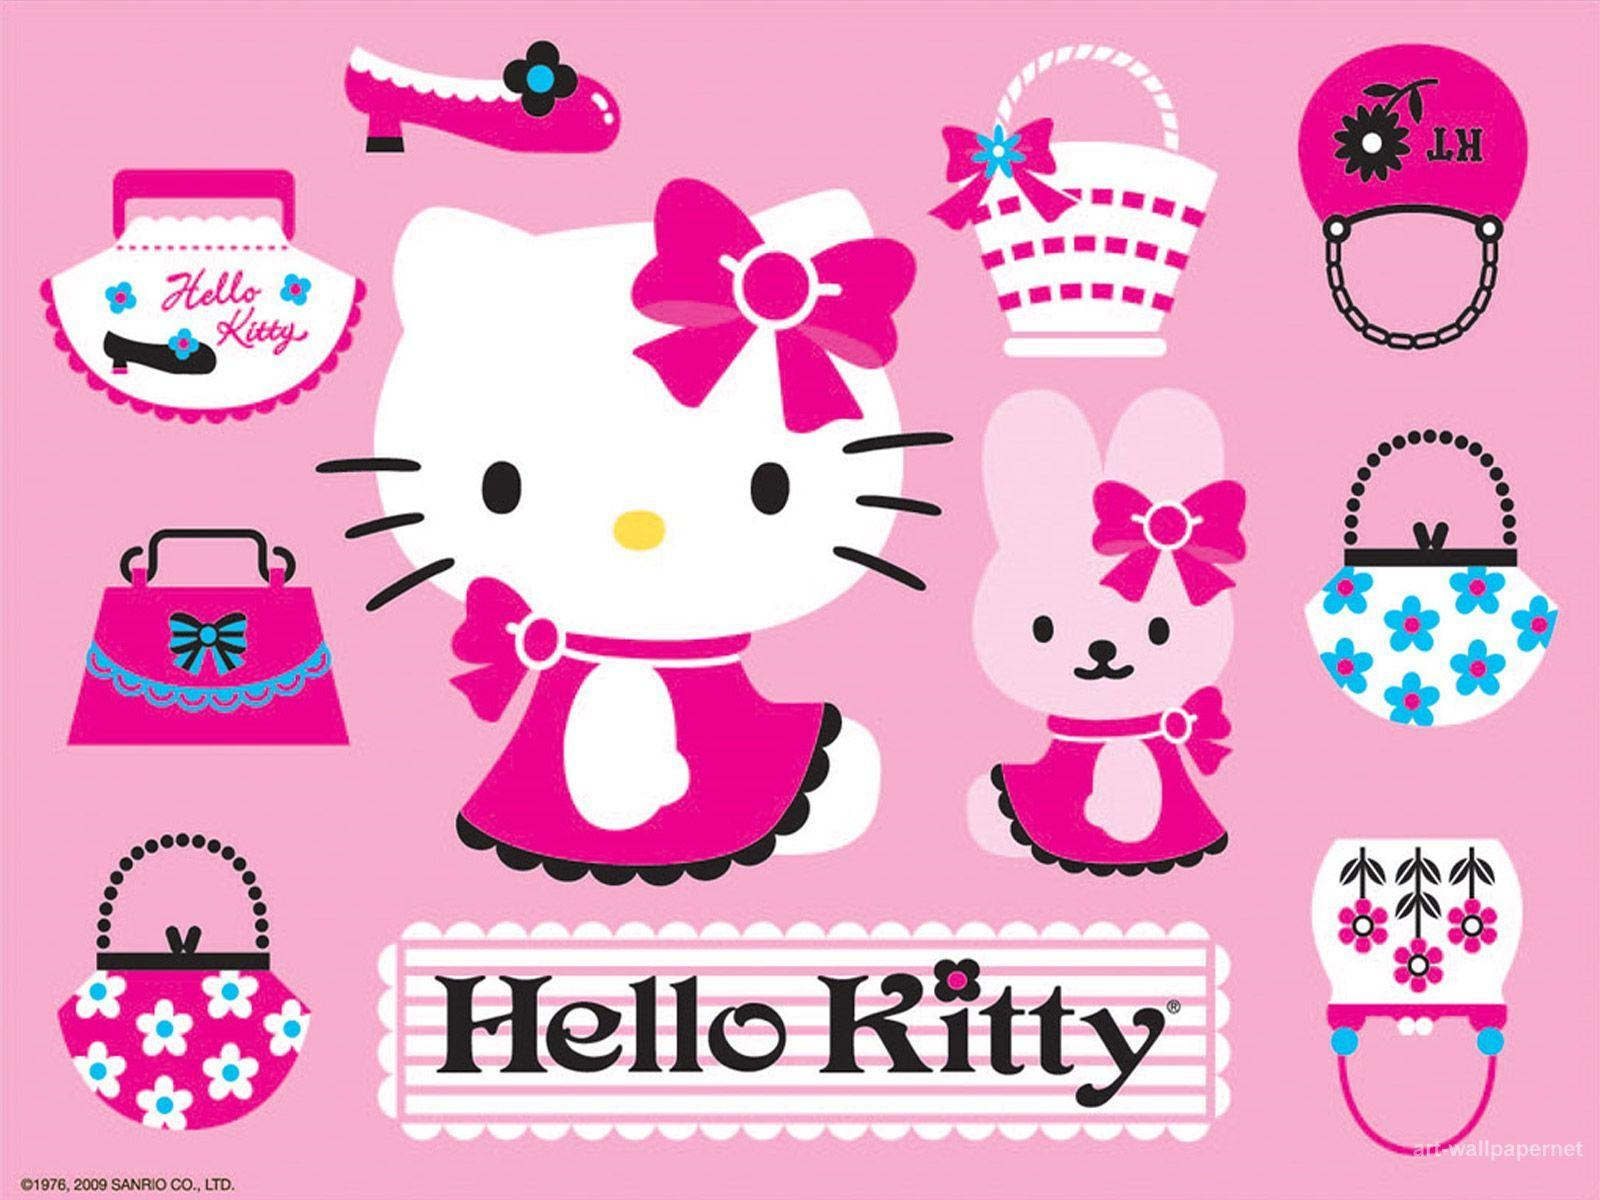 Hello kitty wallpapers and screensavers wallpaper cave - Wallpaper hello kitty full hd ...